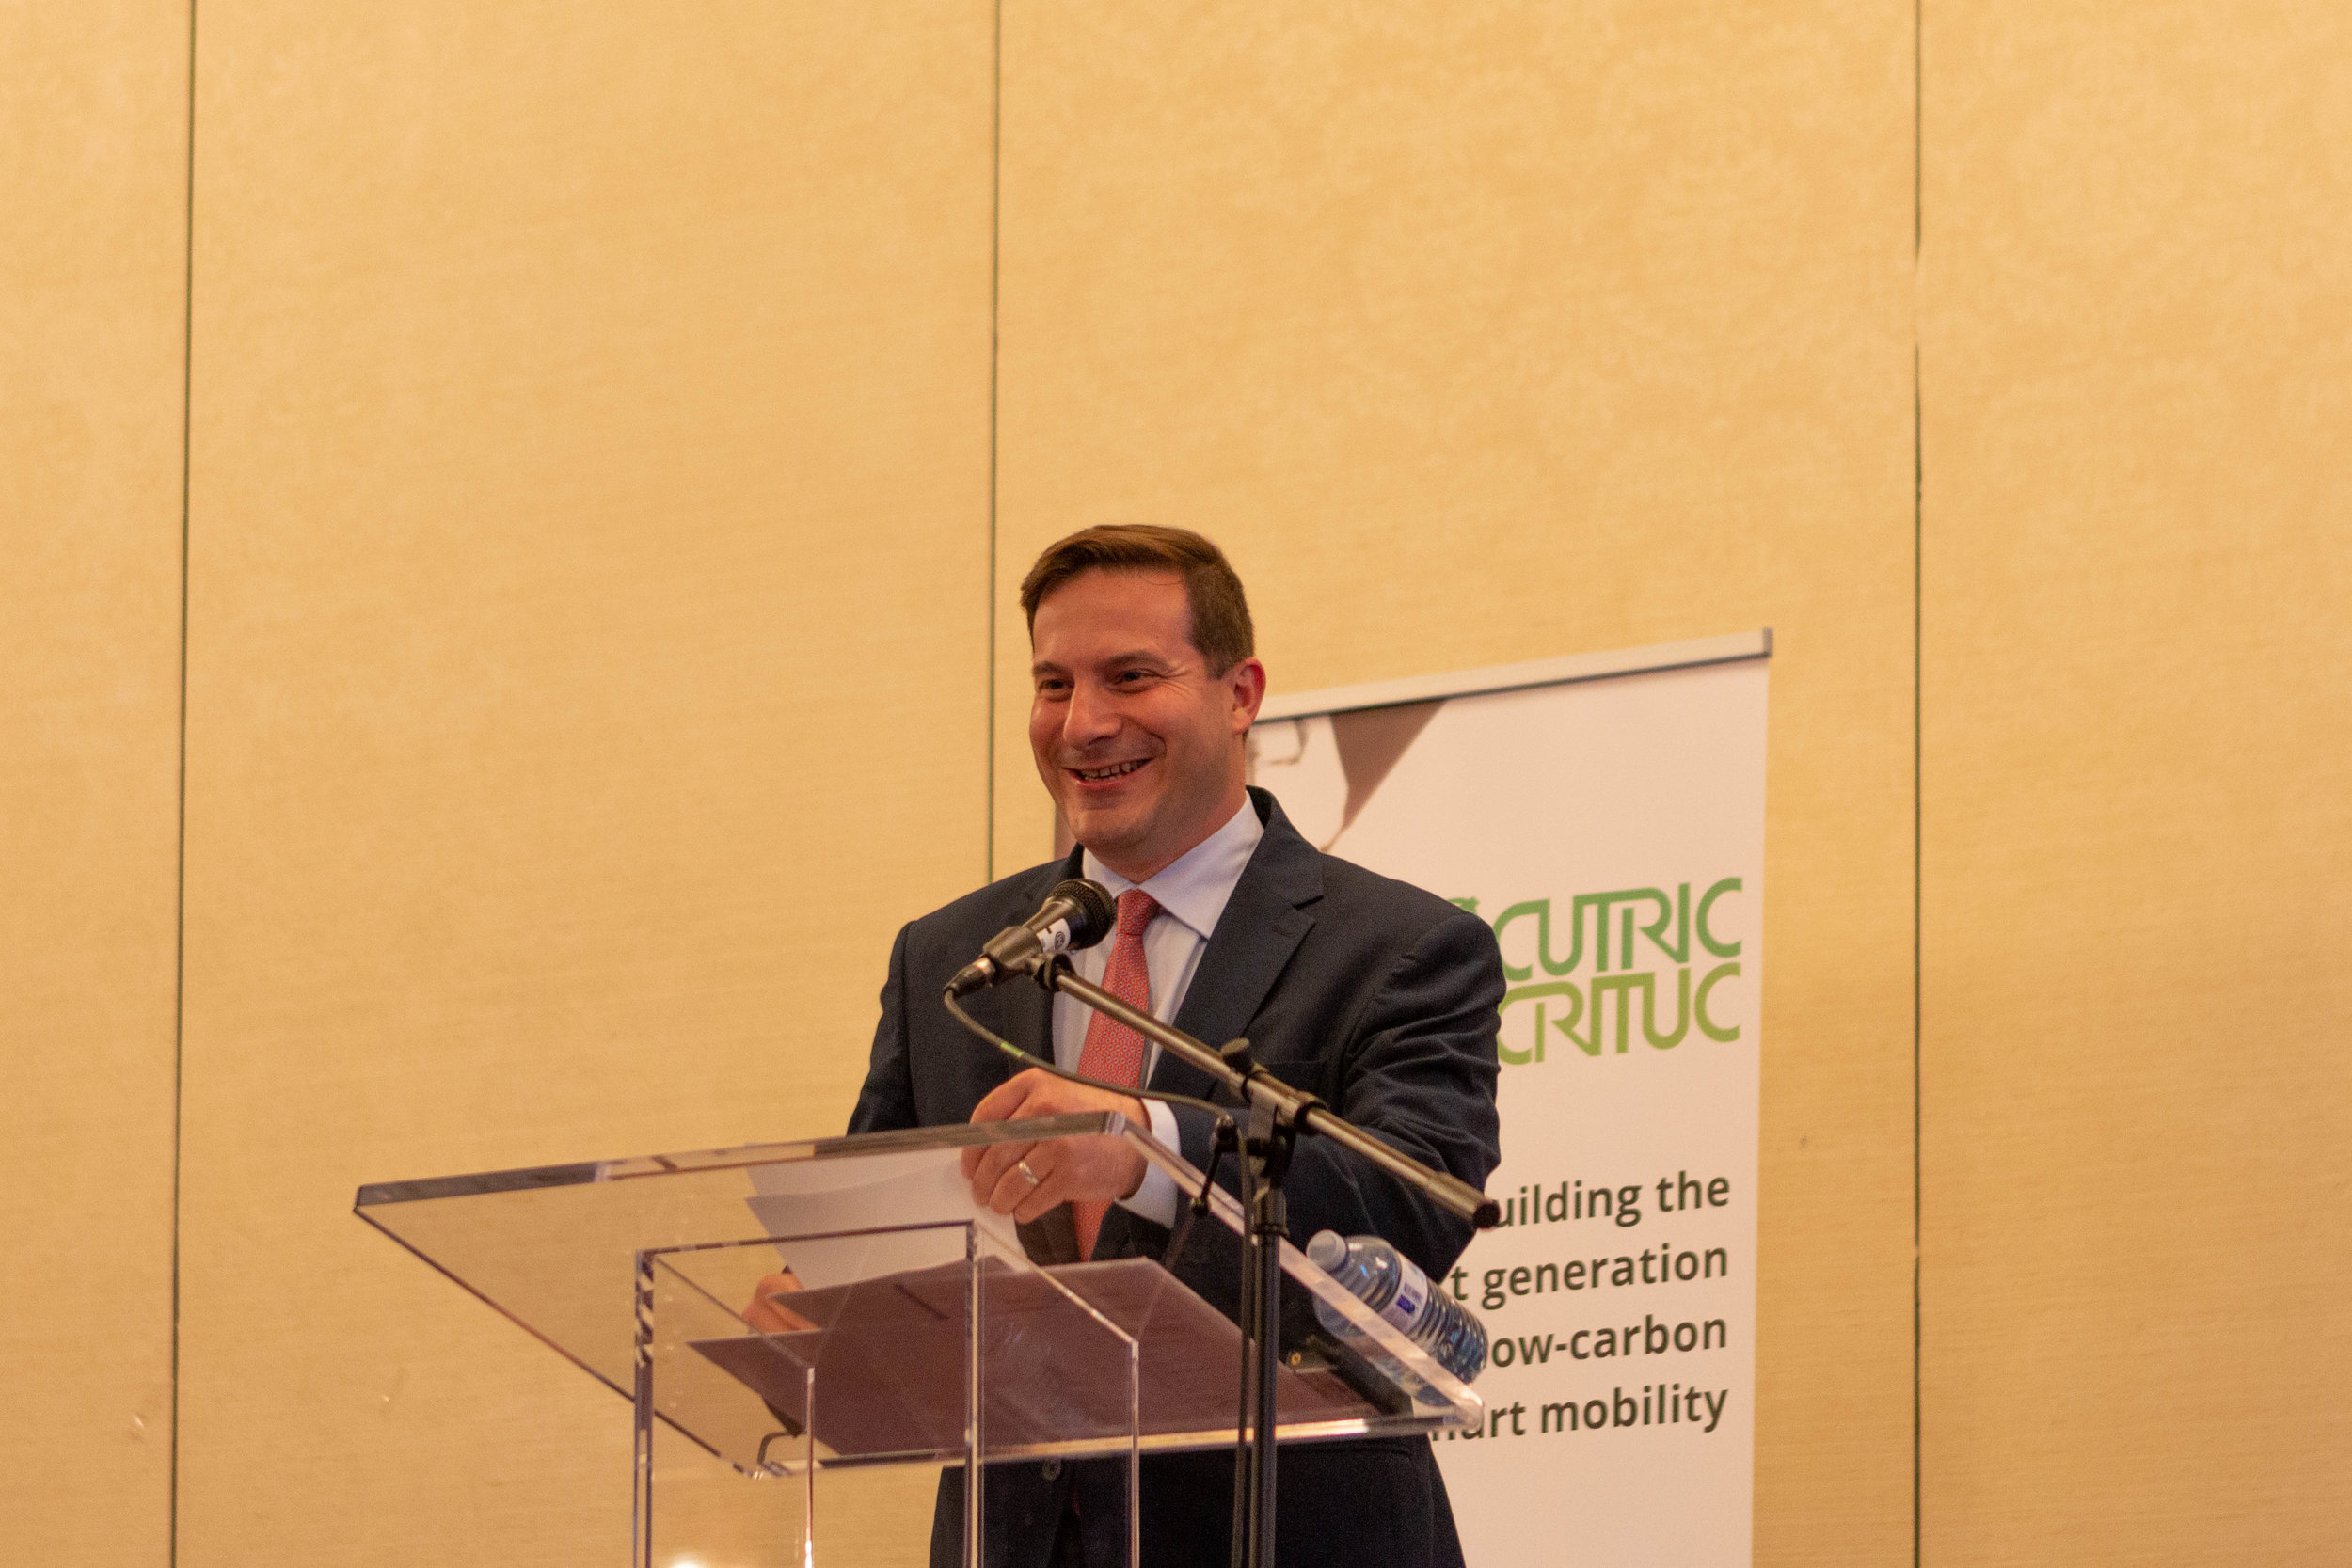 Marco Mendicino - Parliamentary Secretary to Minister of Infrastructure